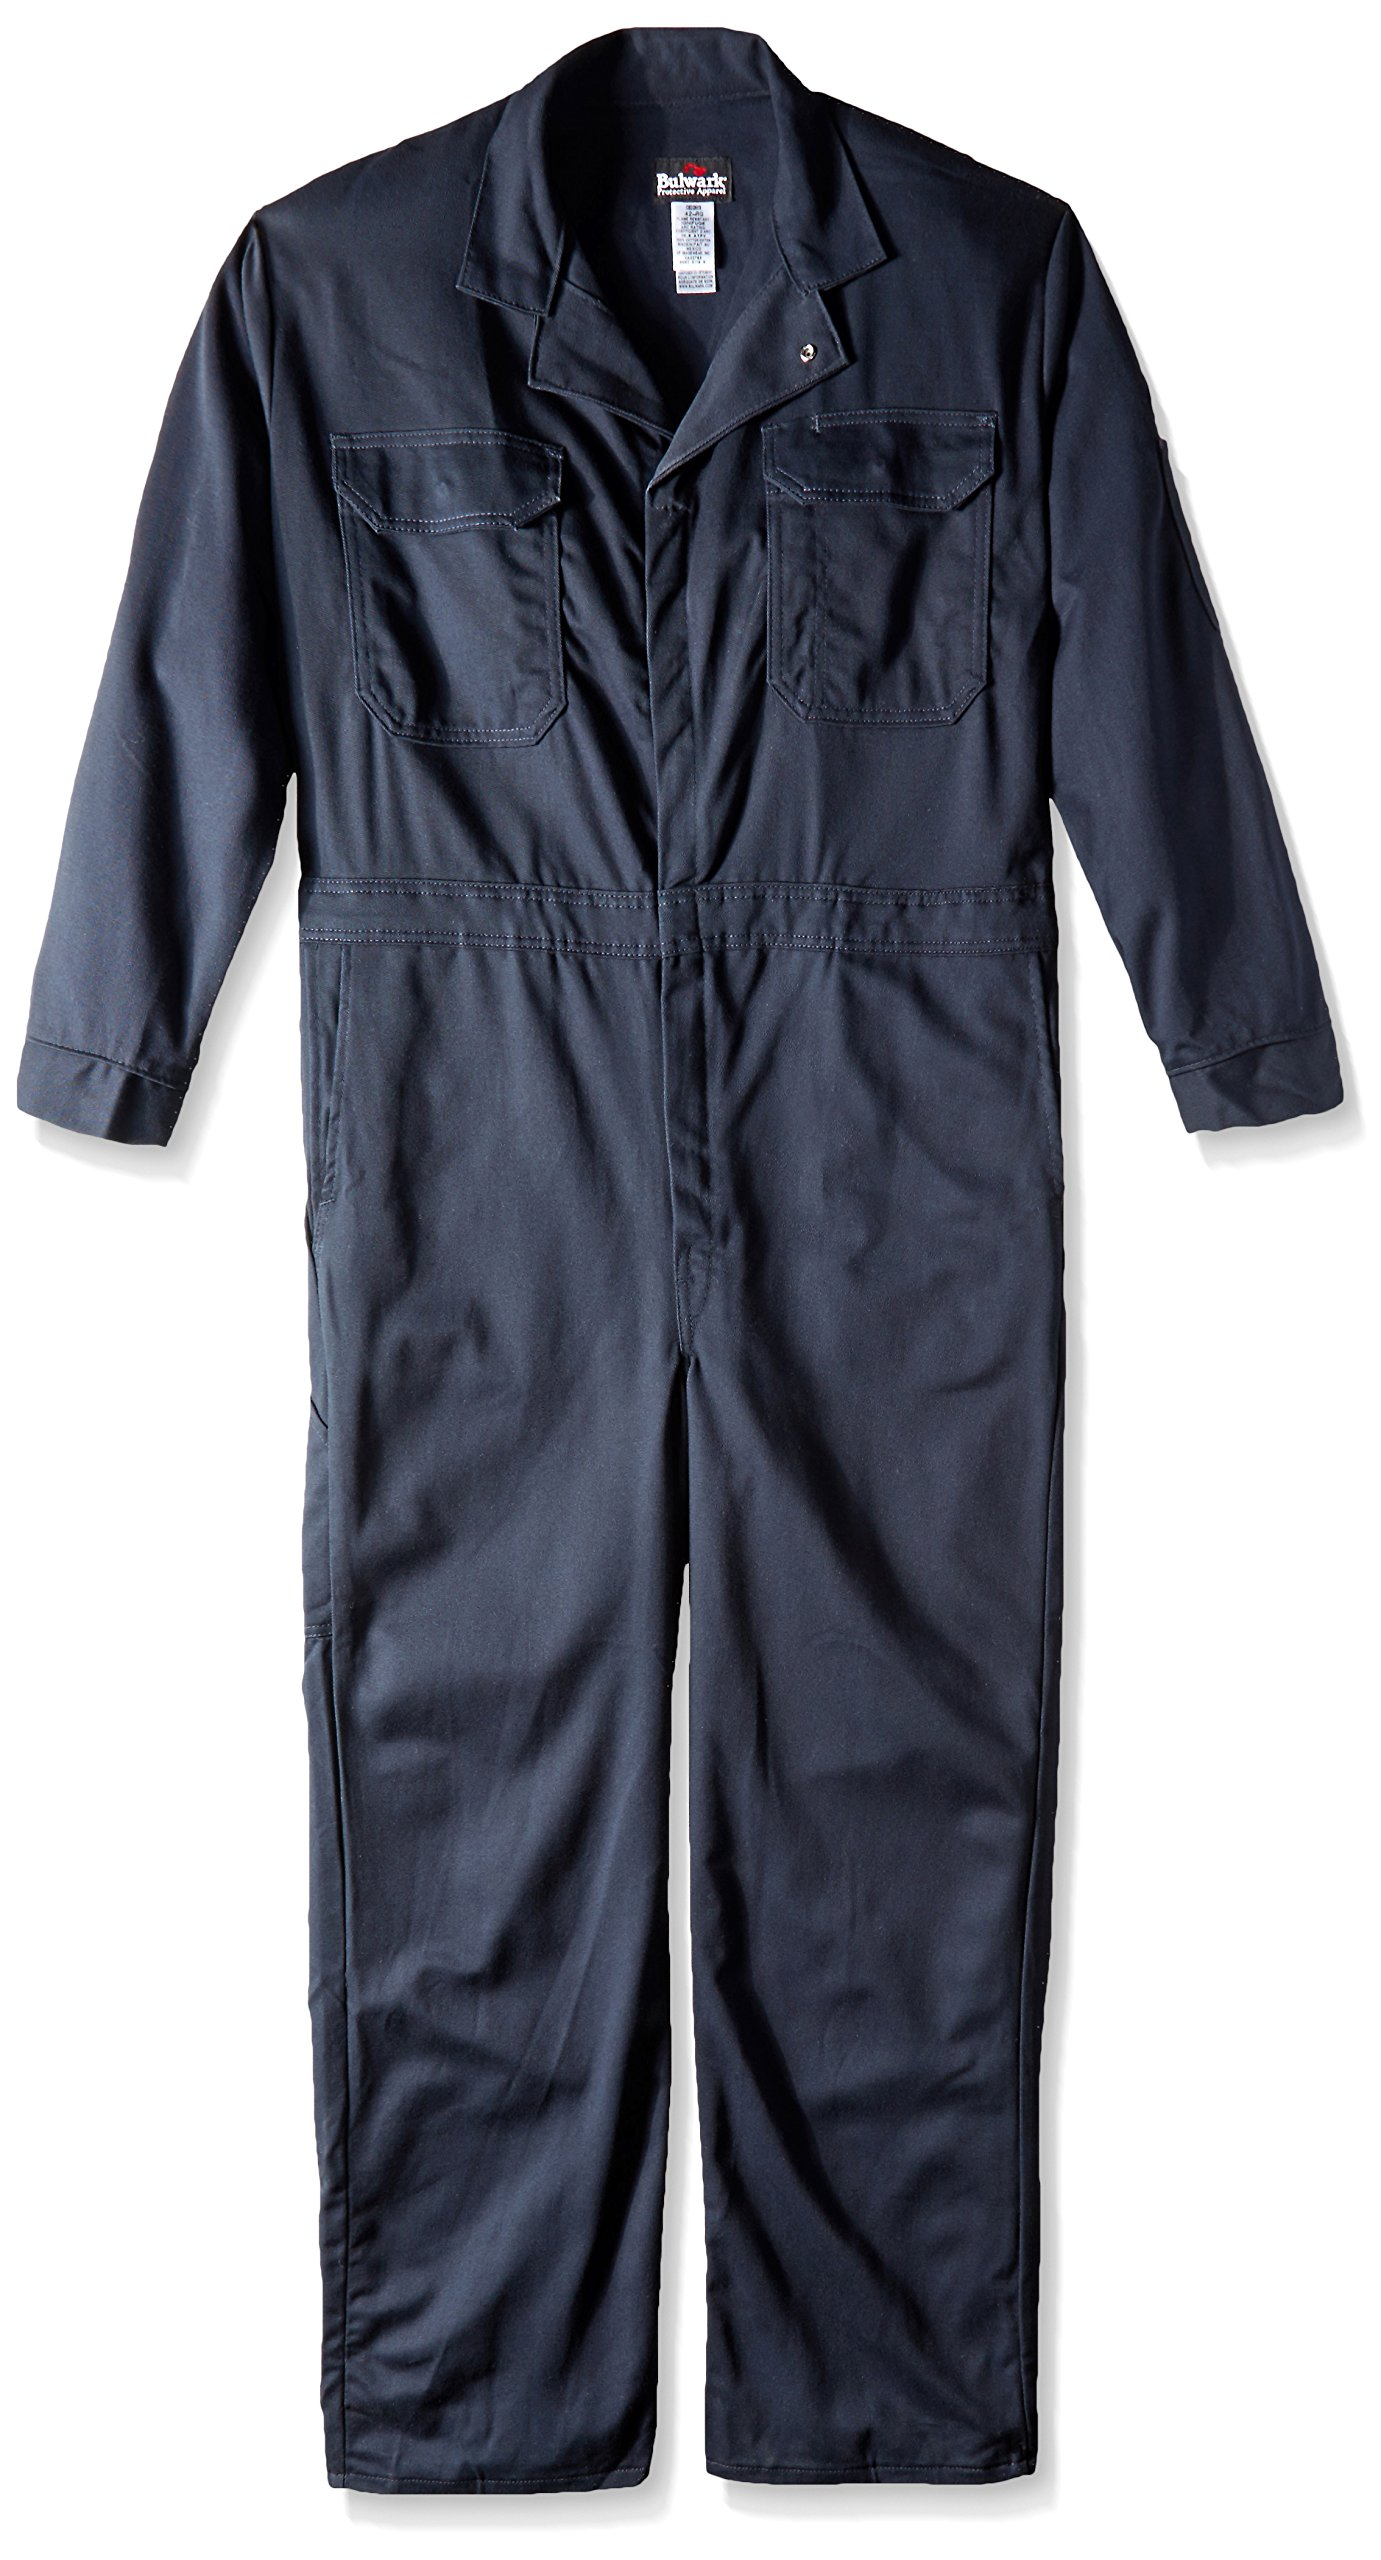 Bulwark Men's Flame Resistant 4.5 oz Nomex IIIA Classic Coverall with Hemmed Sleeves, Navy 52 Long by Bulwark FR (Image #1)